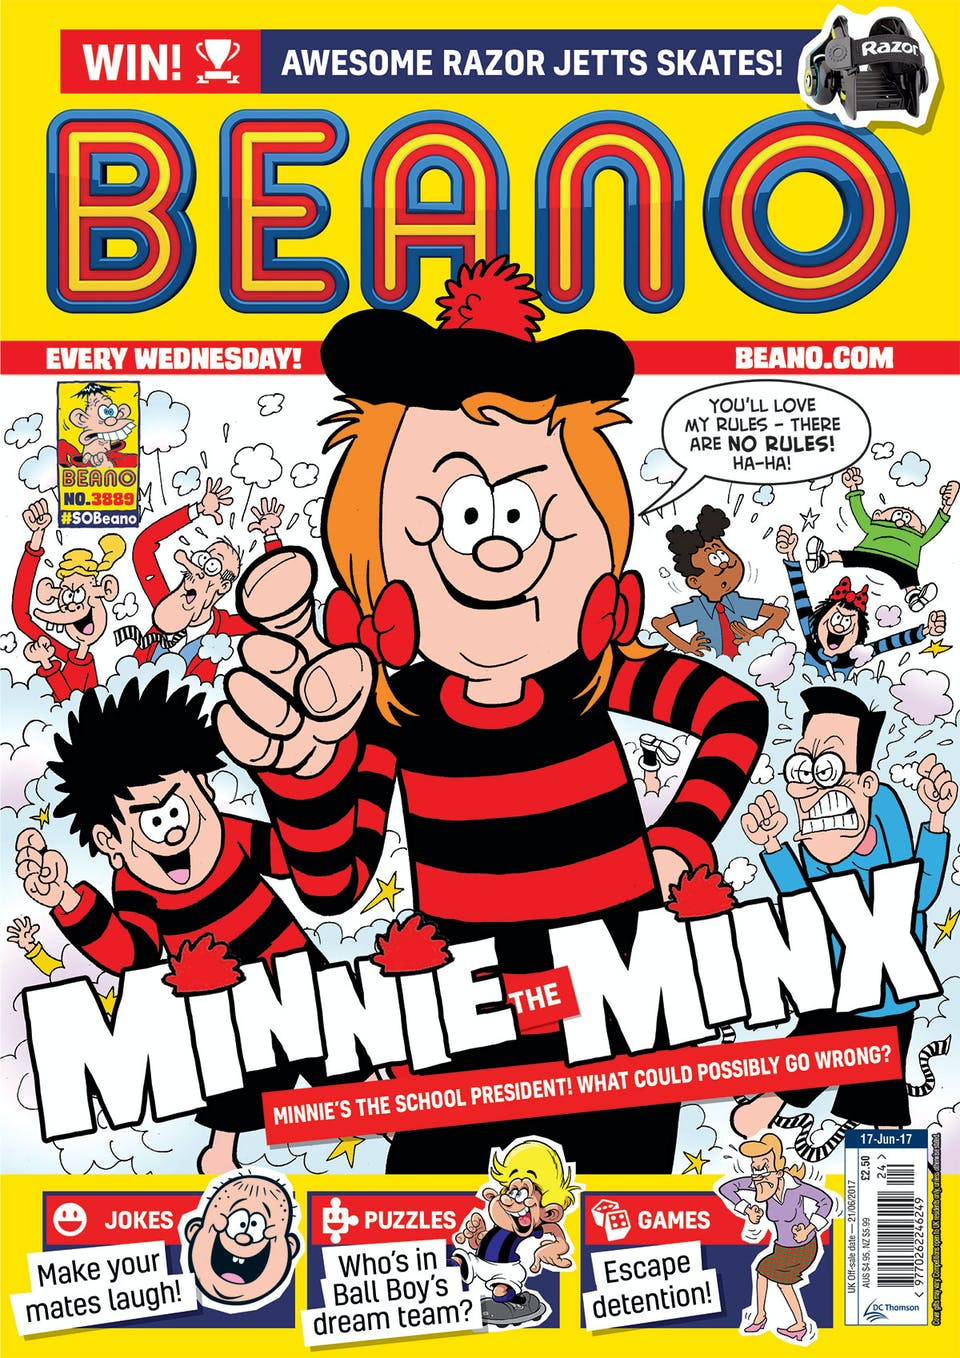 Beano 17th June 2017 No. 3889